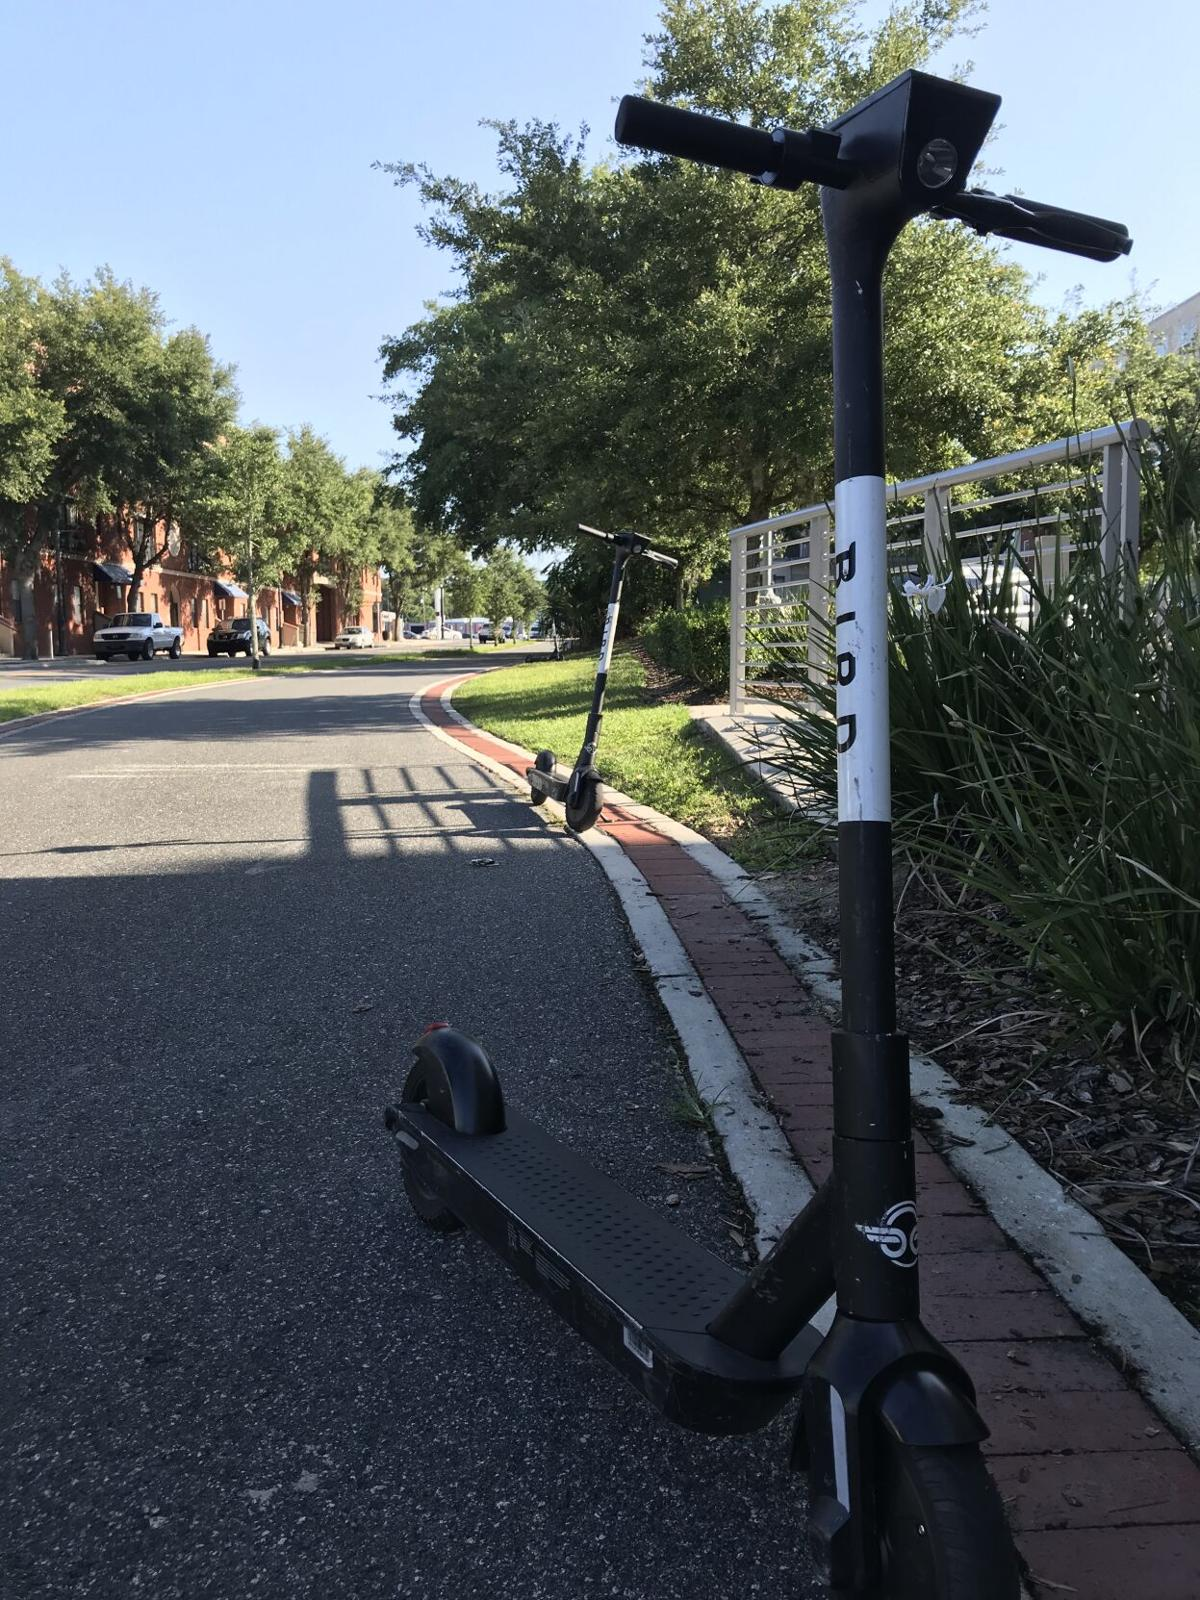 Two scooters parked on sidewalk